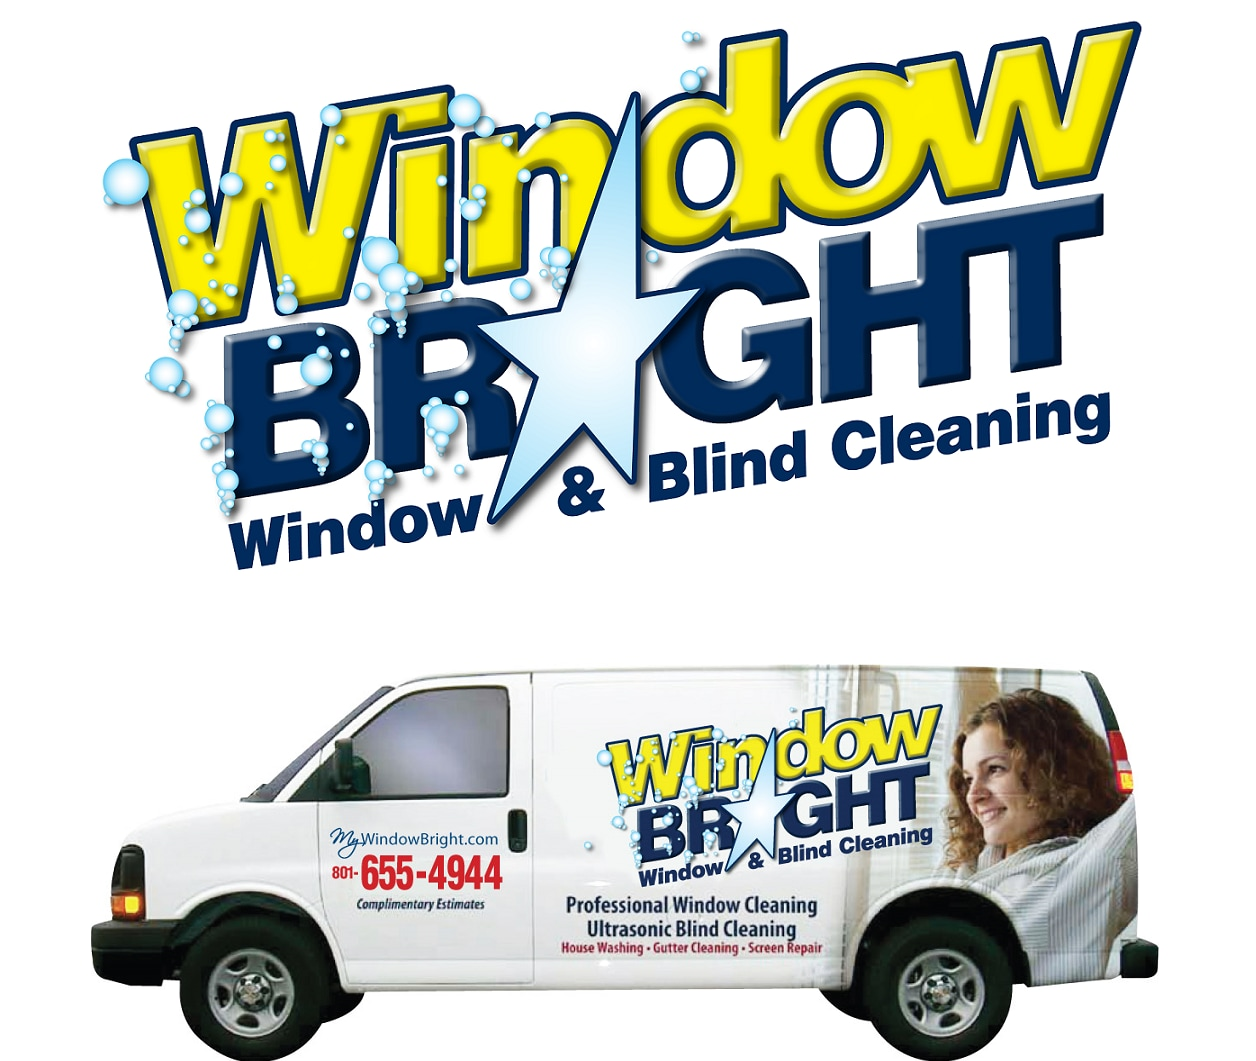 Window Bright Window & Blind Cleaning